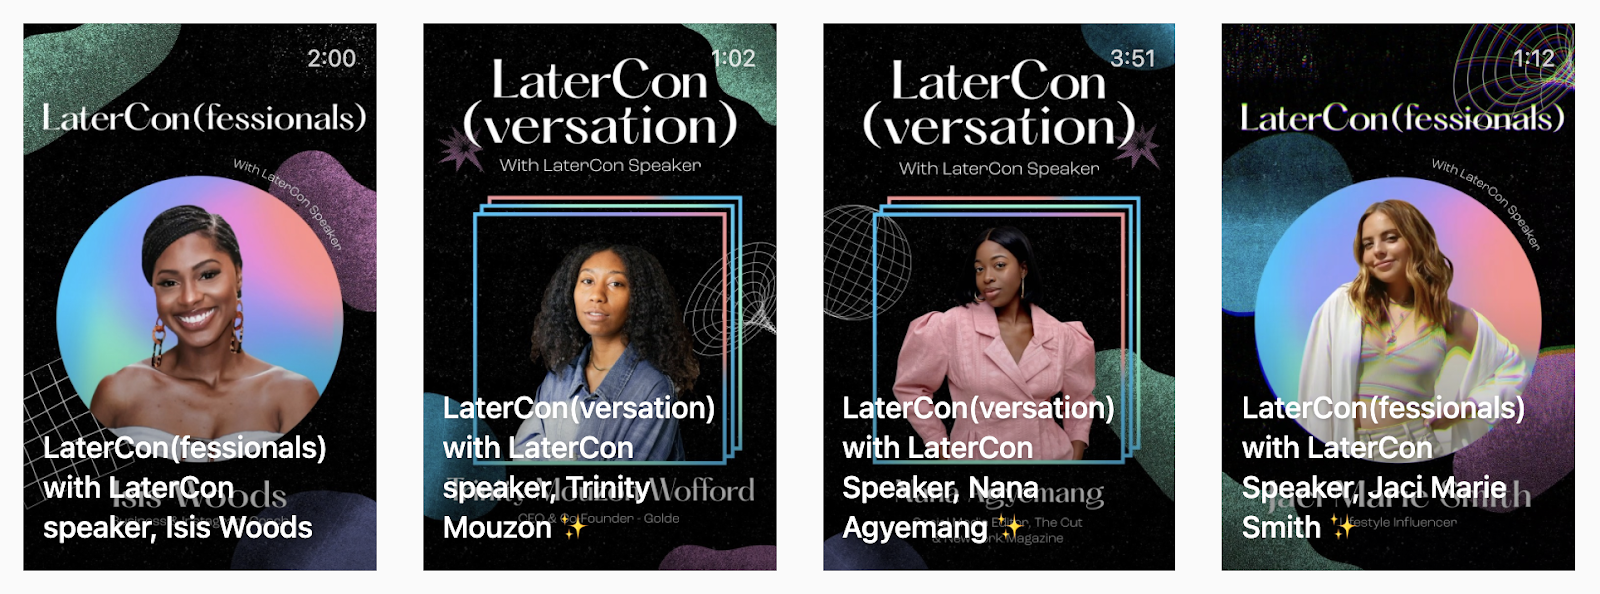 Screenshot of four IGTV videos by Later. Each video features a speaker from the LaterCon conference.